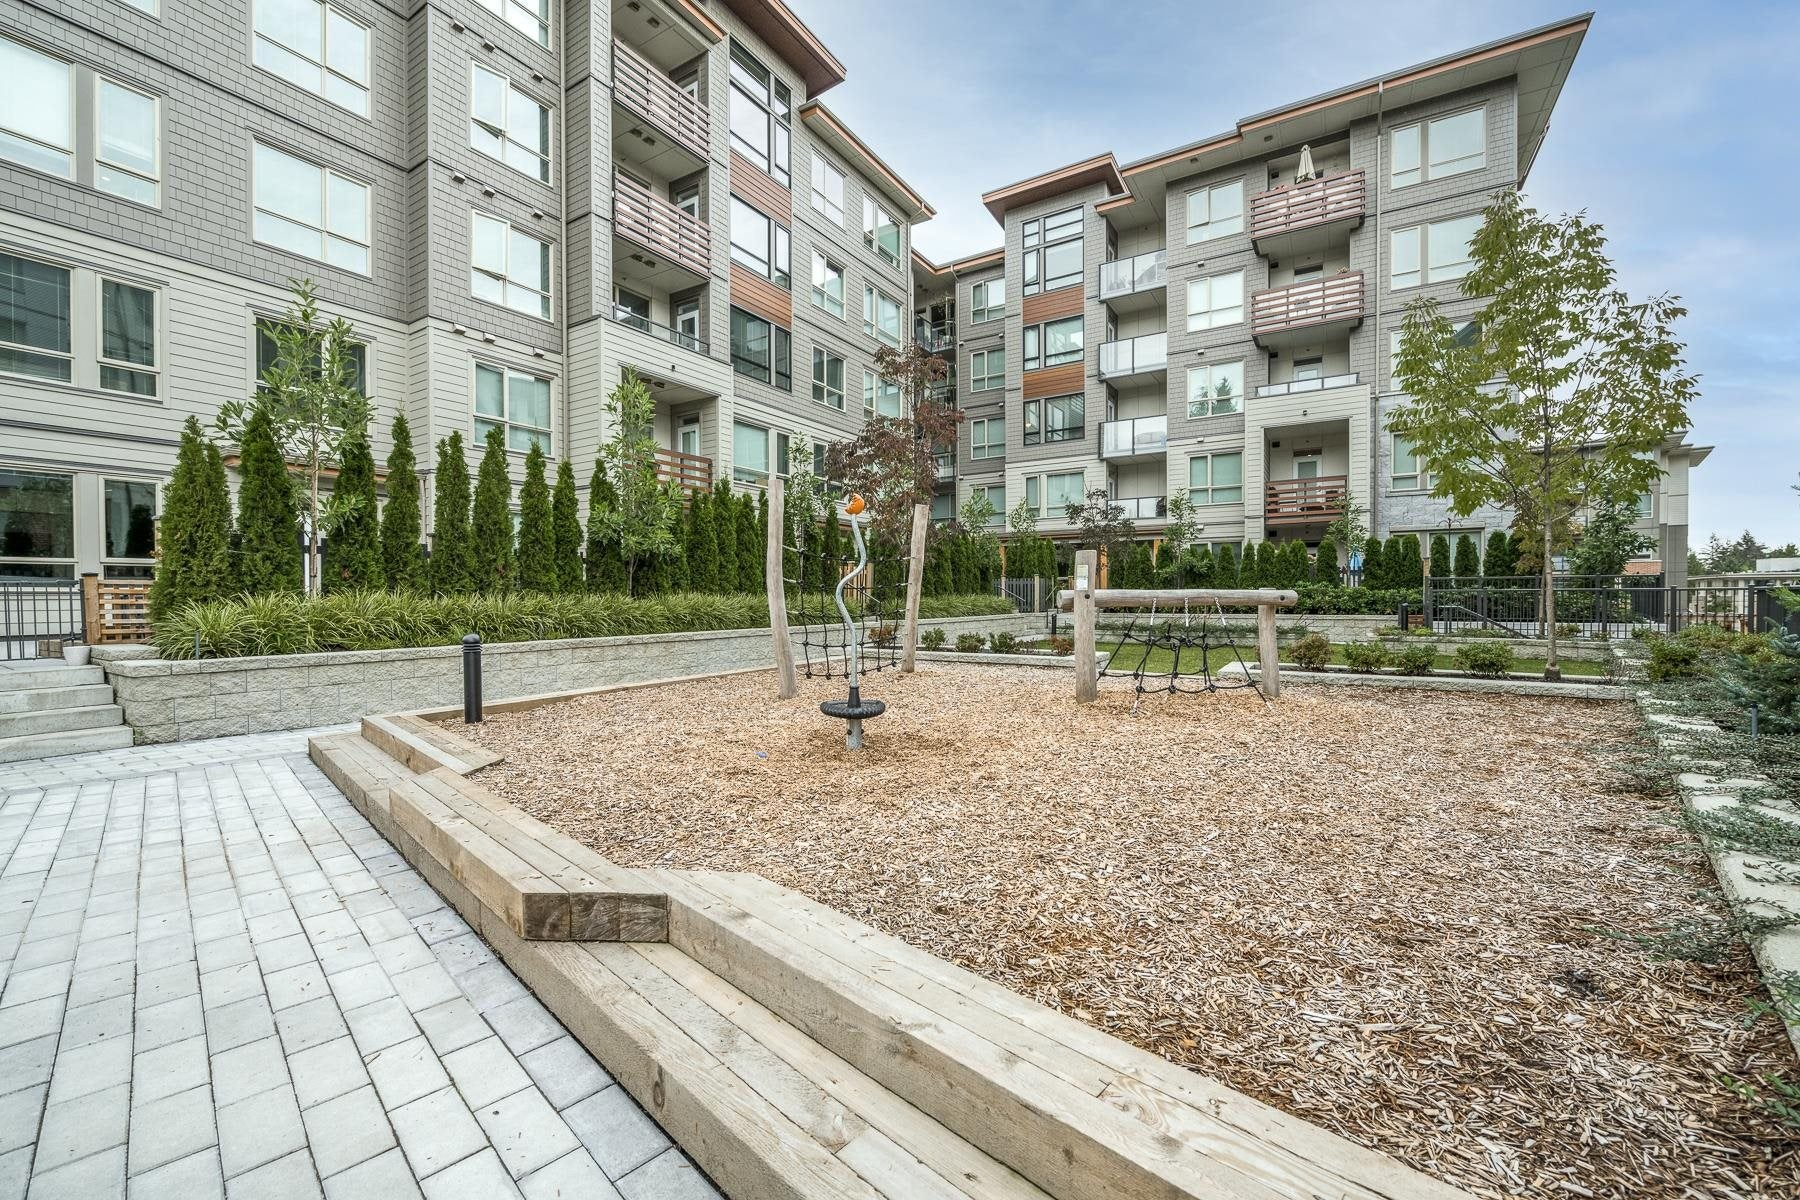 219 2651 LIBRARY LANE - Lynn Valley Apartment/Condo for sale, 2 Bedrooms (R2623232) - #18